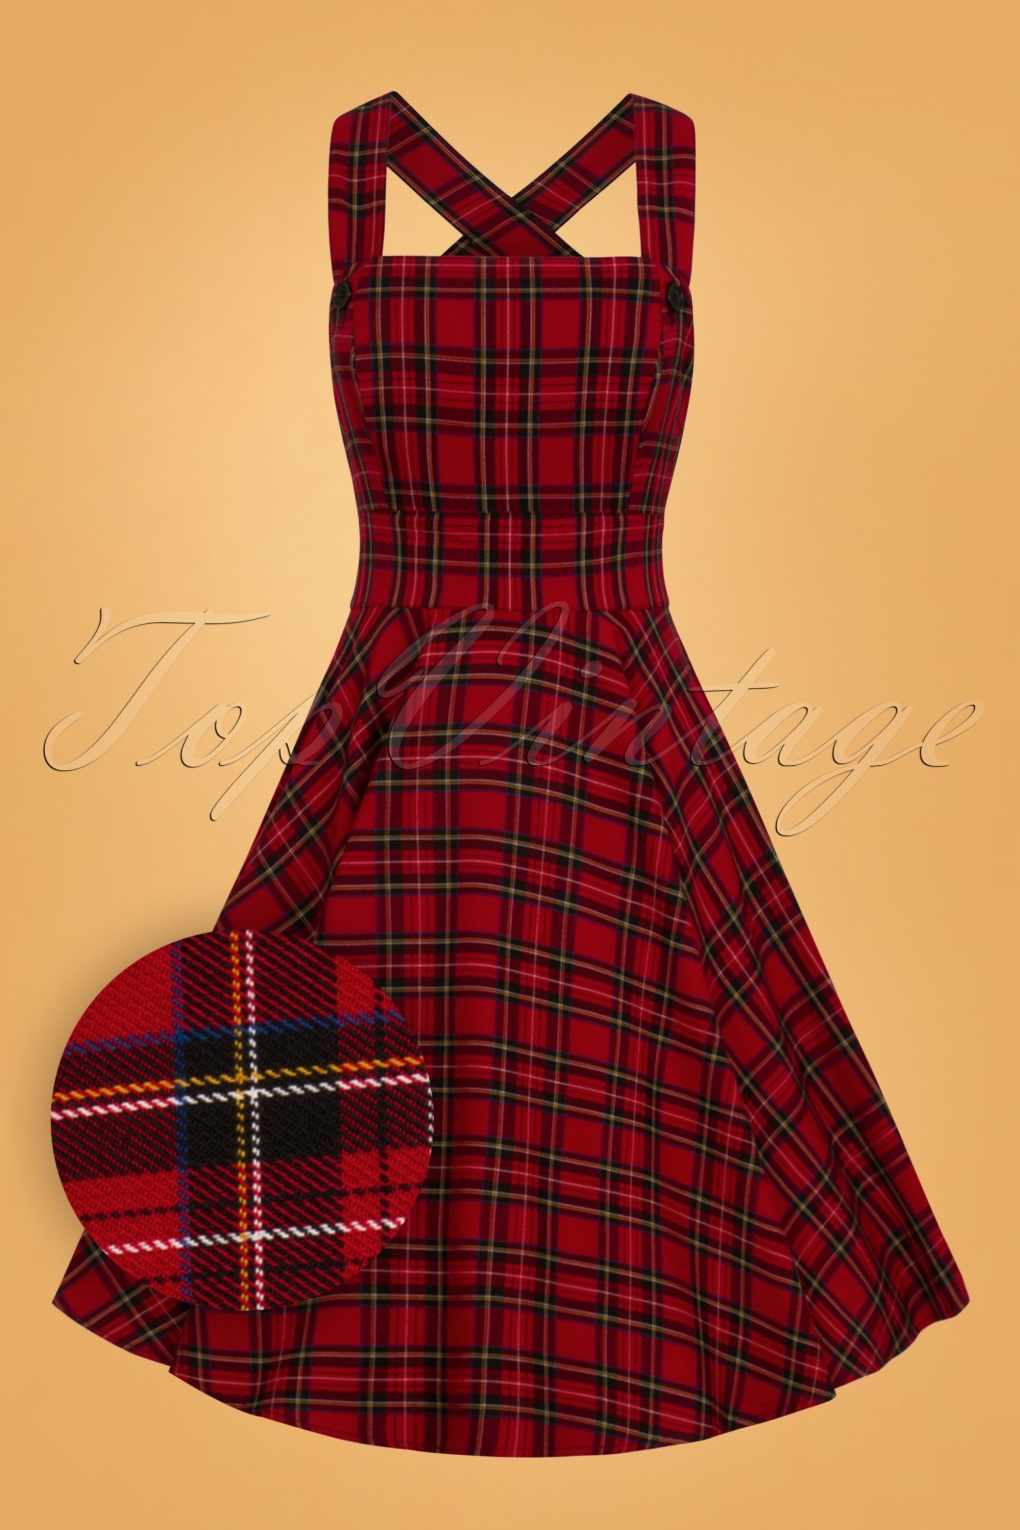 Retro Skirts: Vintage, Pencil, Circle, & Plus Sizes 40s Peebles Pinafore Tartan Dress in Red £51.28 AT vintagedancer.com